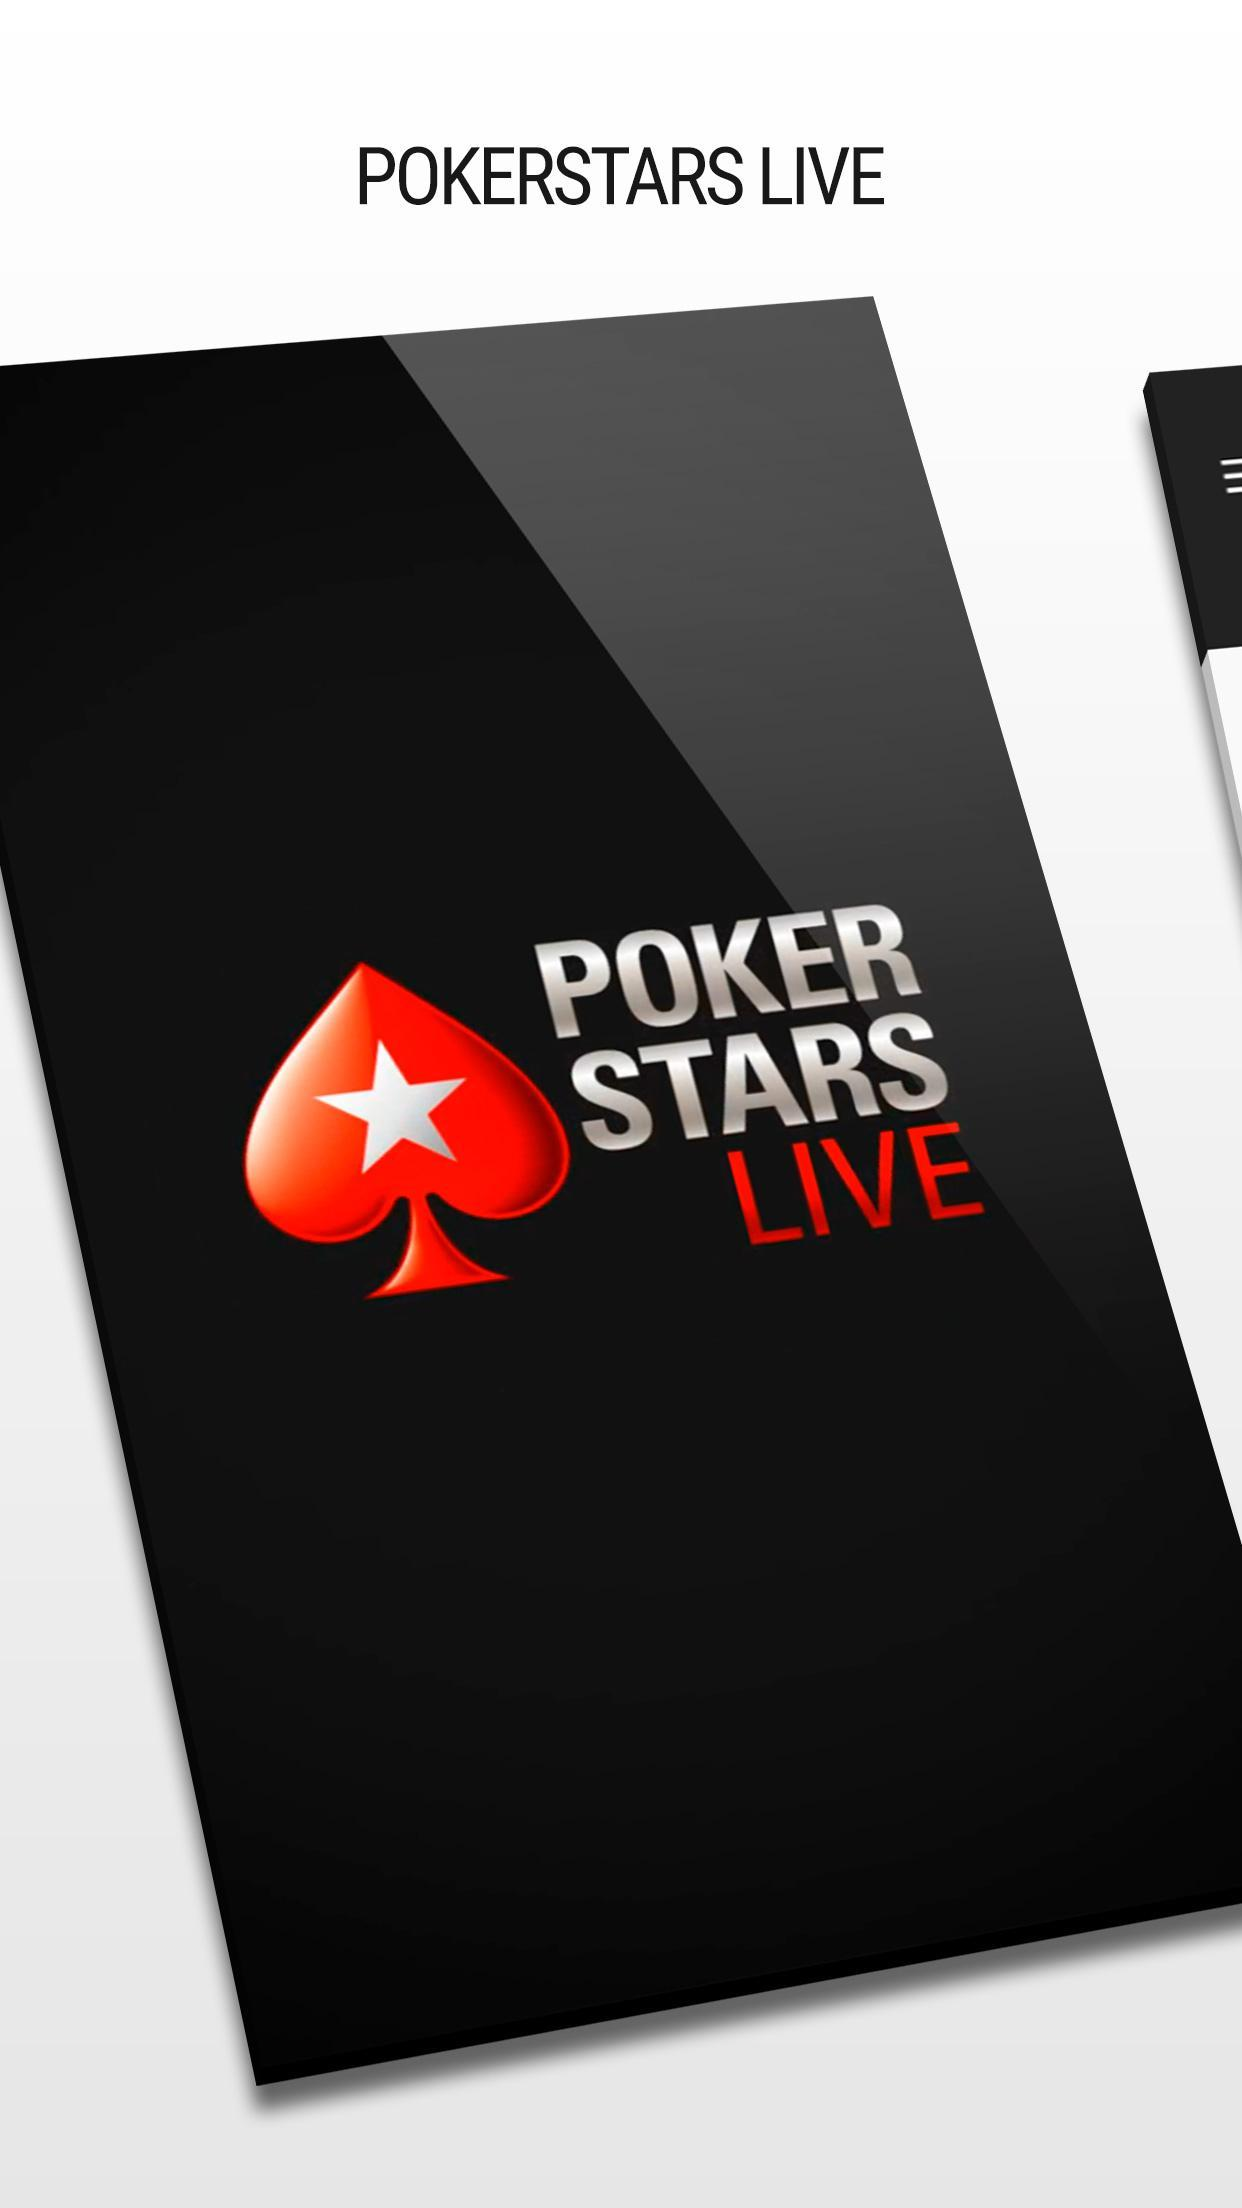 PokerStars Live for Android - APK Download